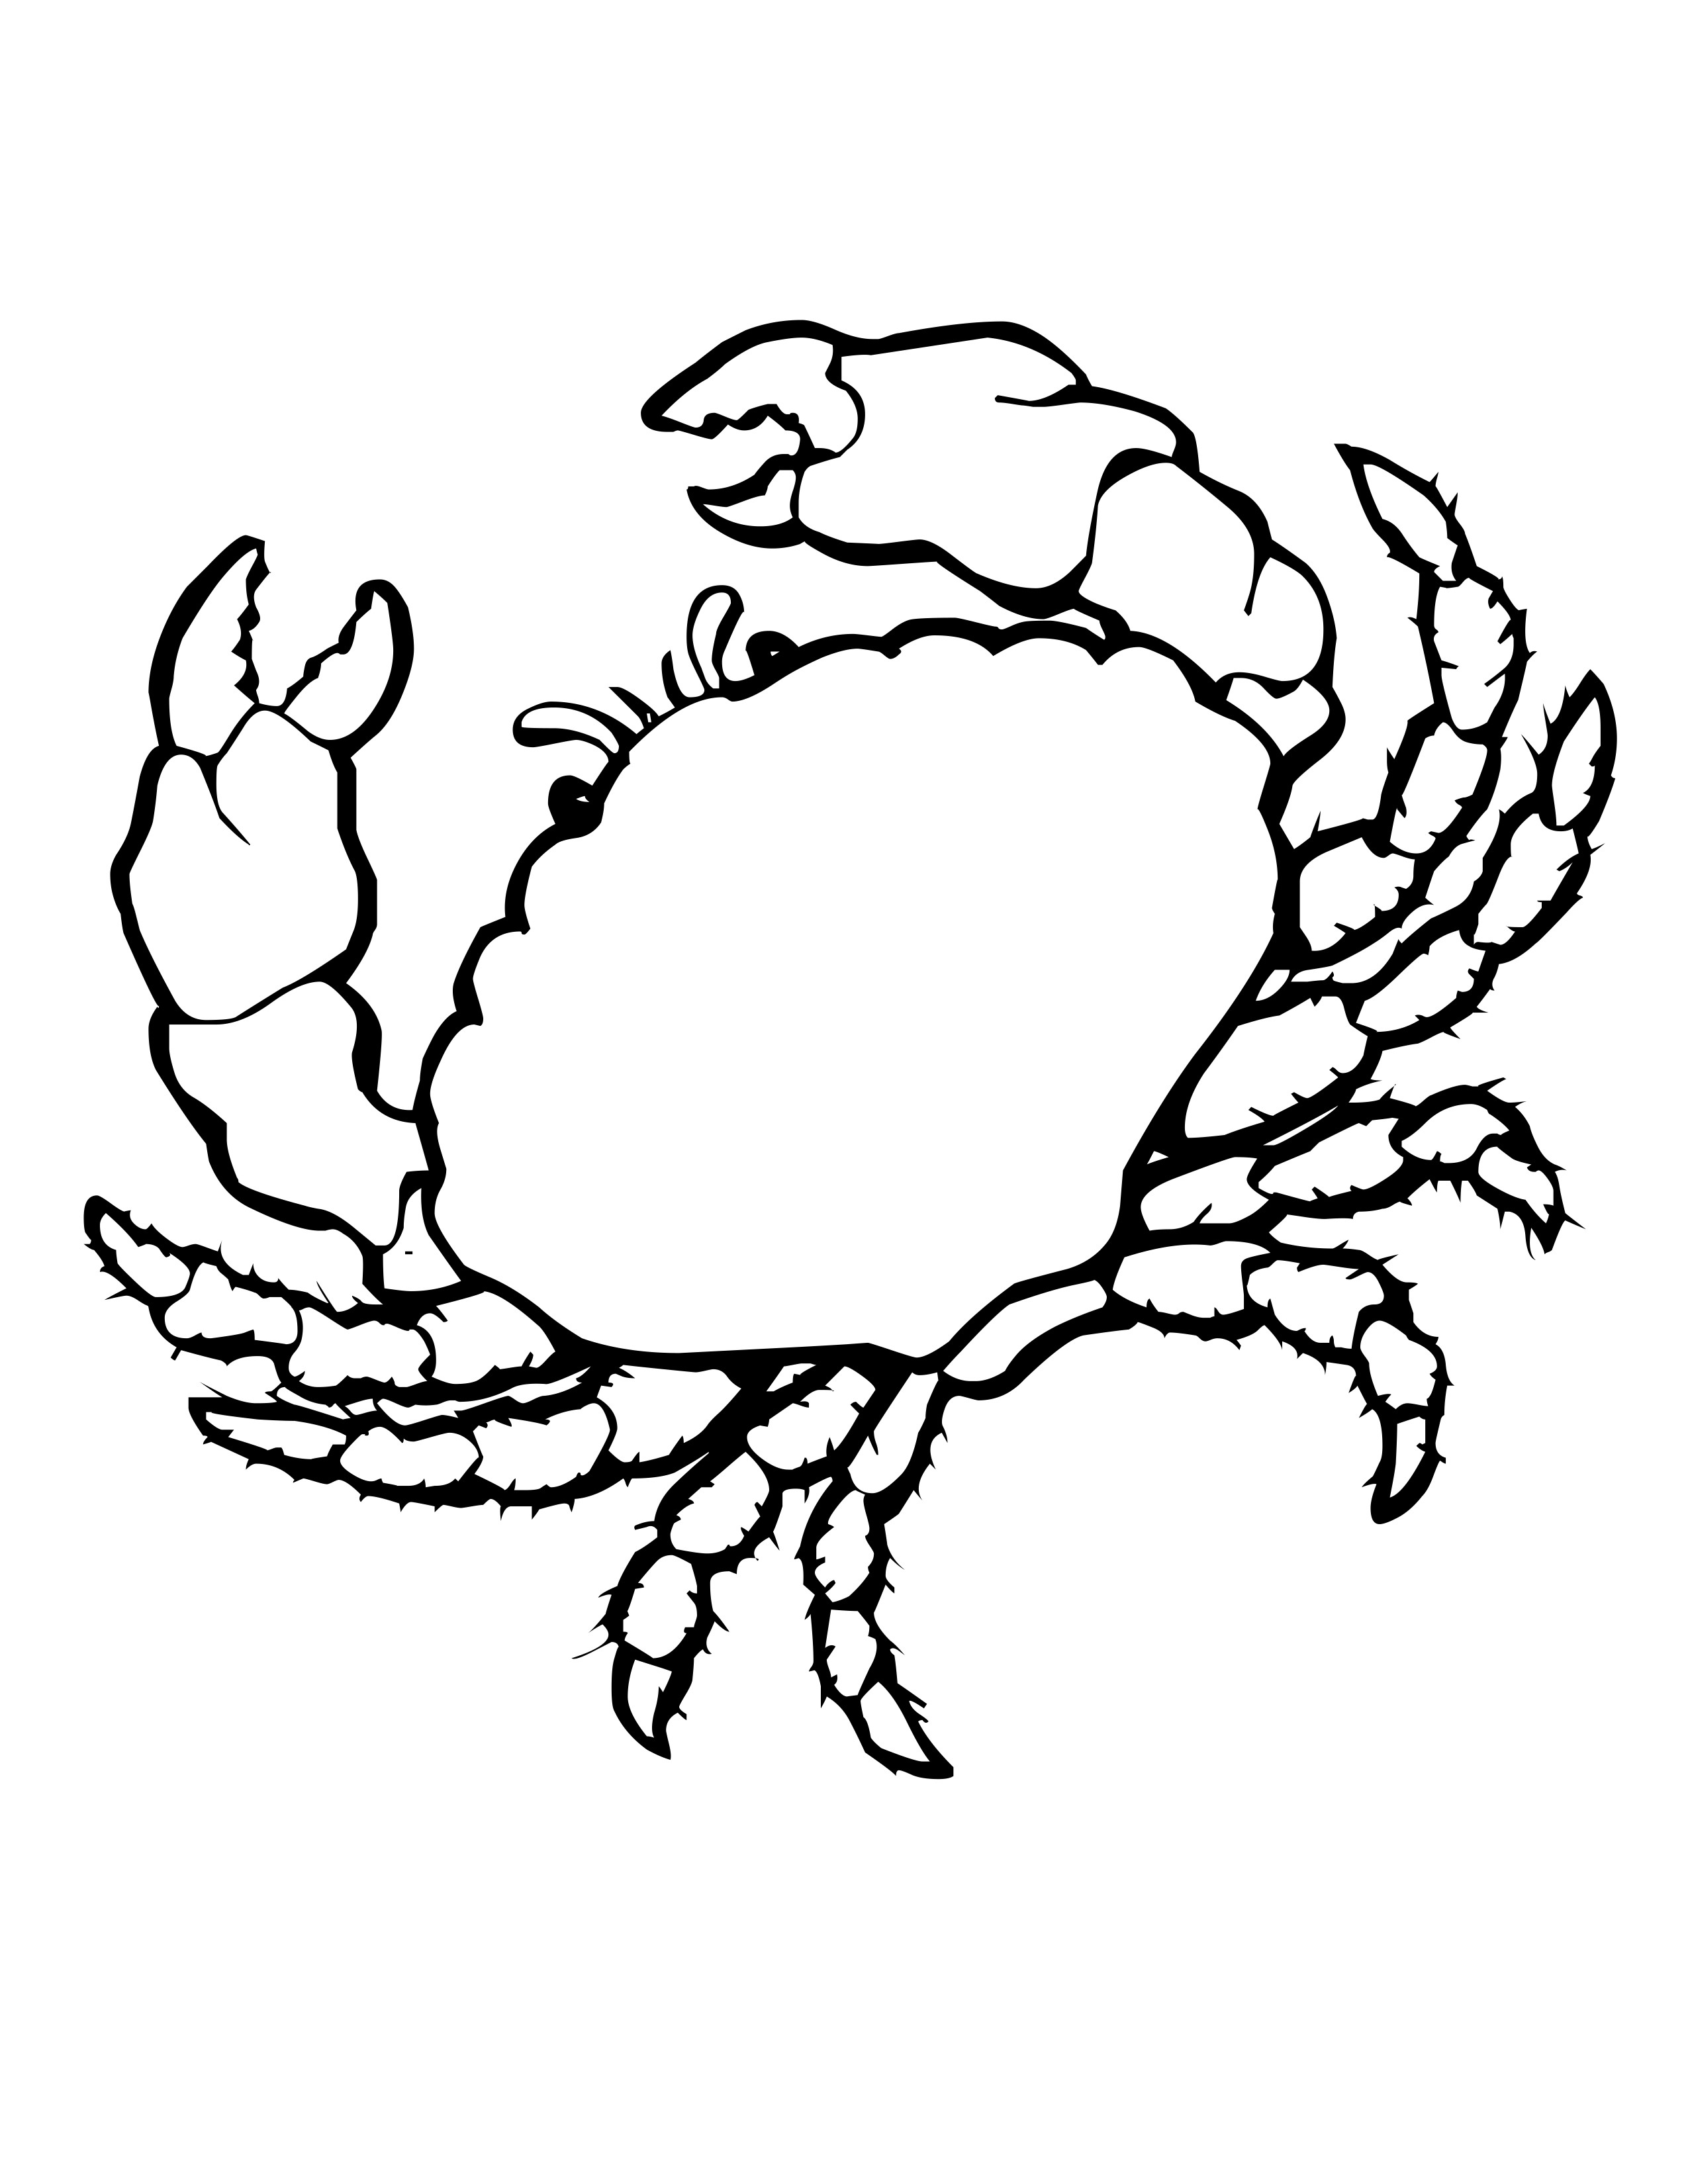 crab coloring pages free free printable crab coloring pages for kids animal place pages crab free coloring